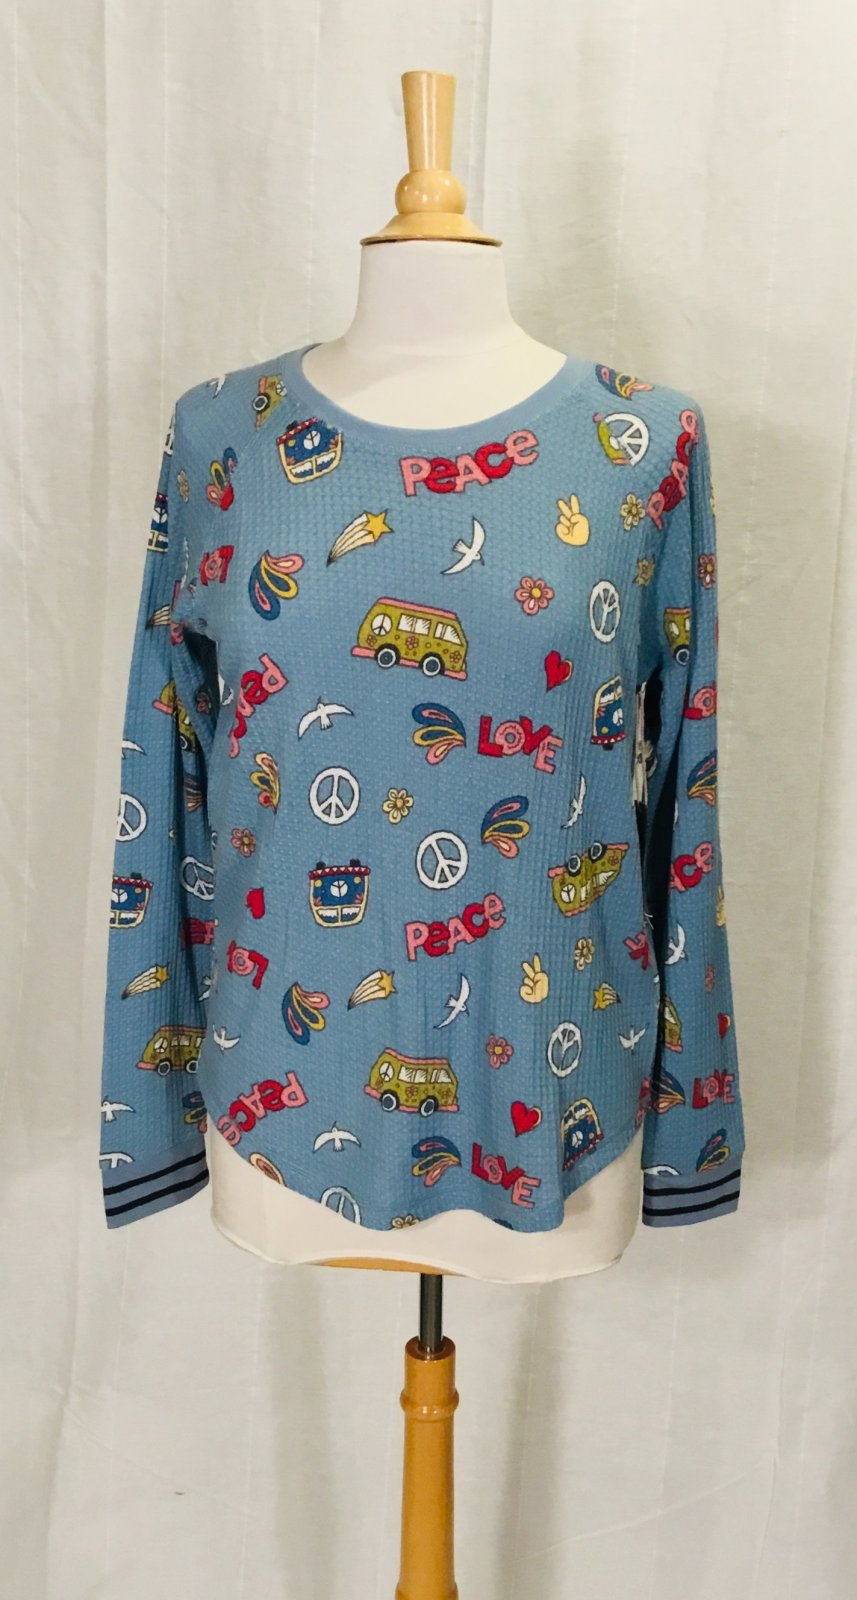 PJ Salvage L/S Peace Thermal